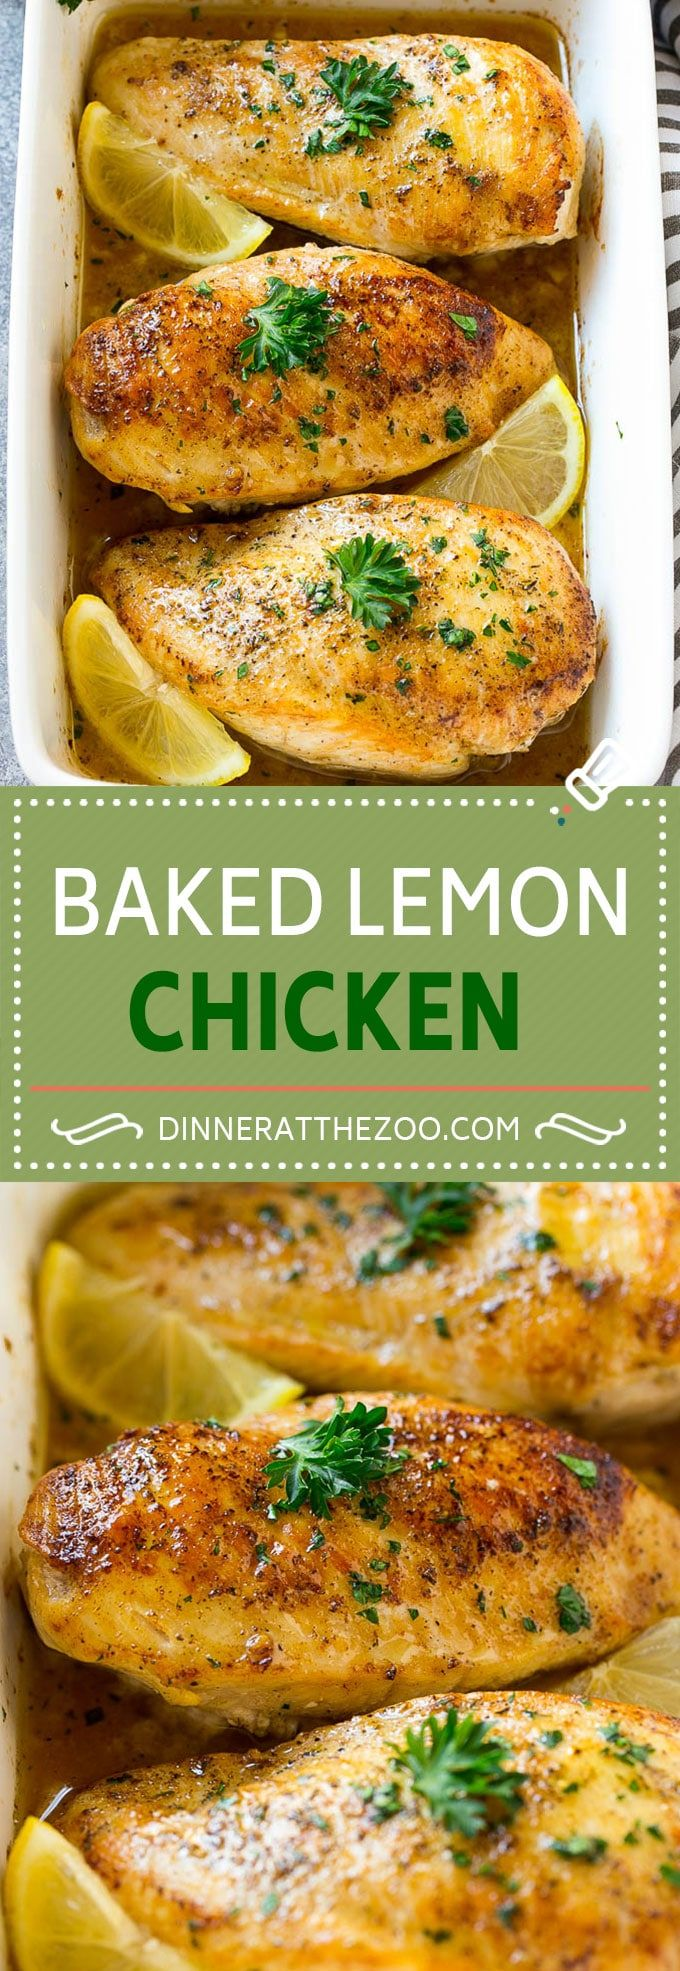 Baked+Lemon+Chicken+Recipe+|+Baked+Chicken+Breasts+|+Lemon+Chicken+Recipe+|+Easy+Chicken+Recipe